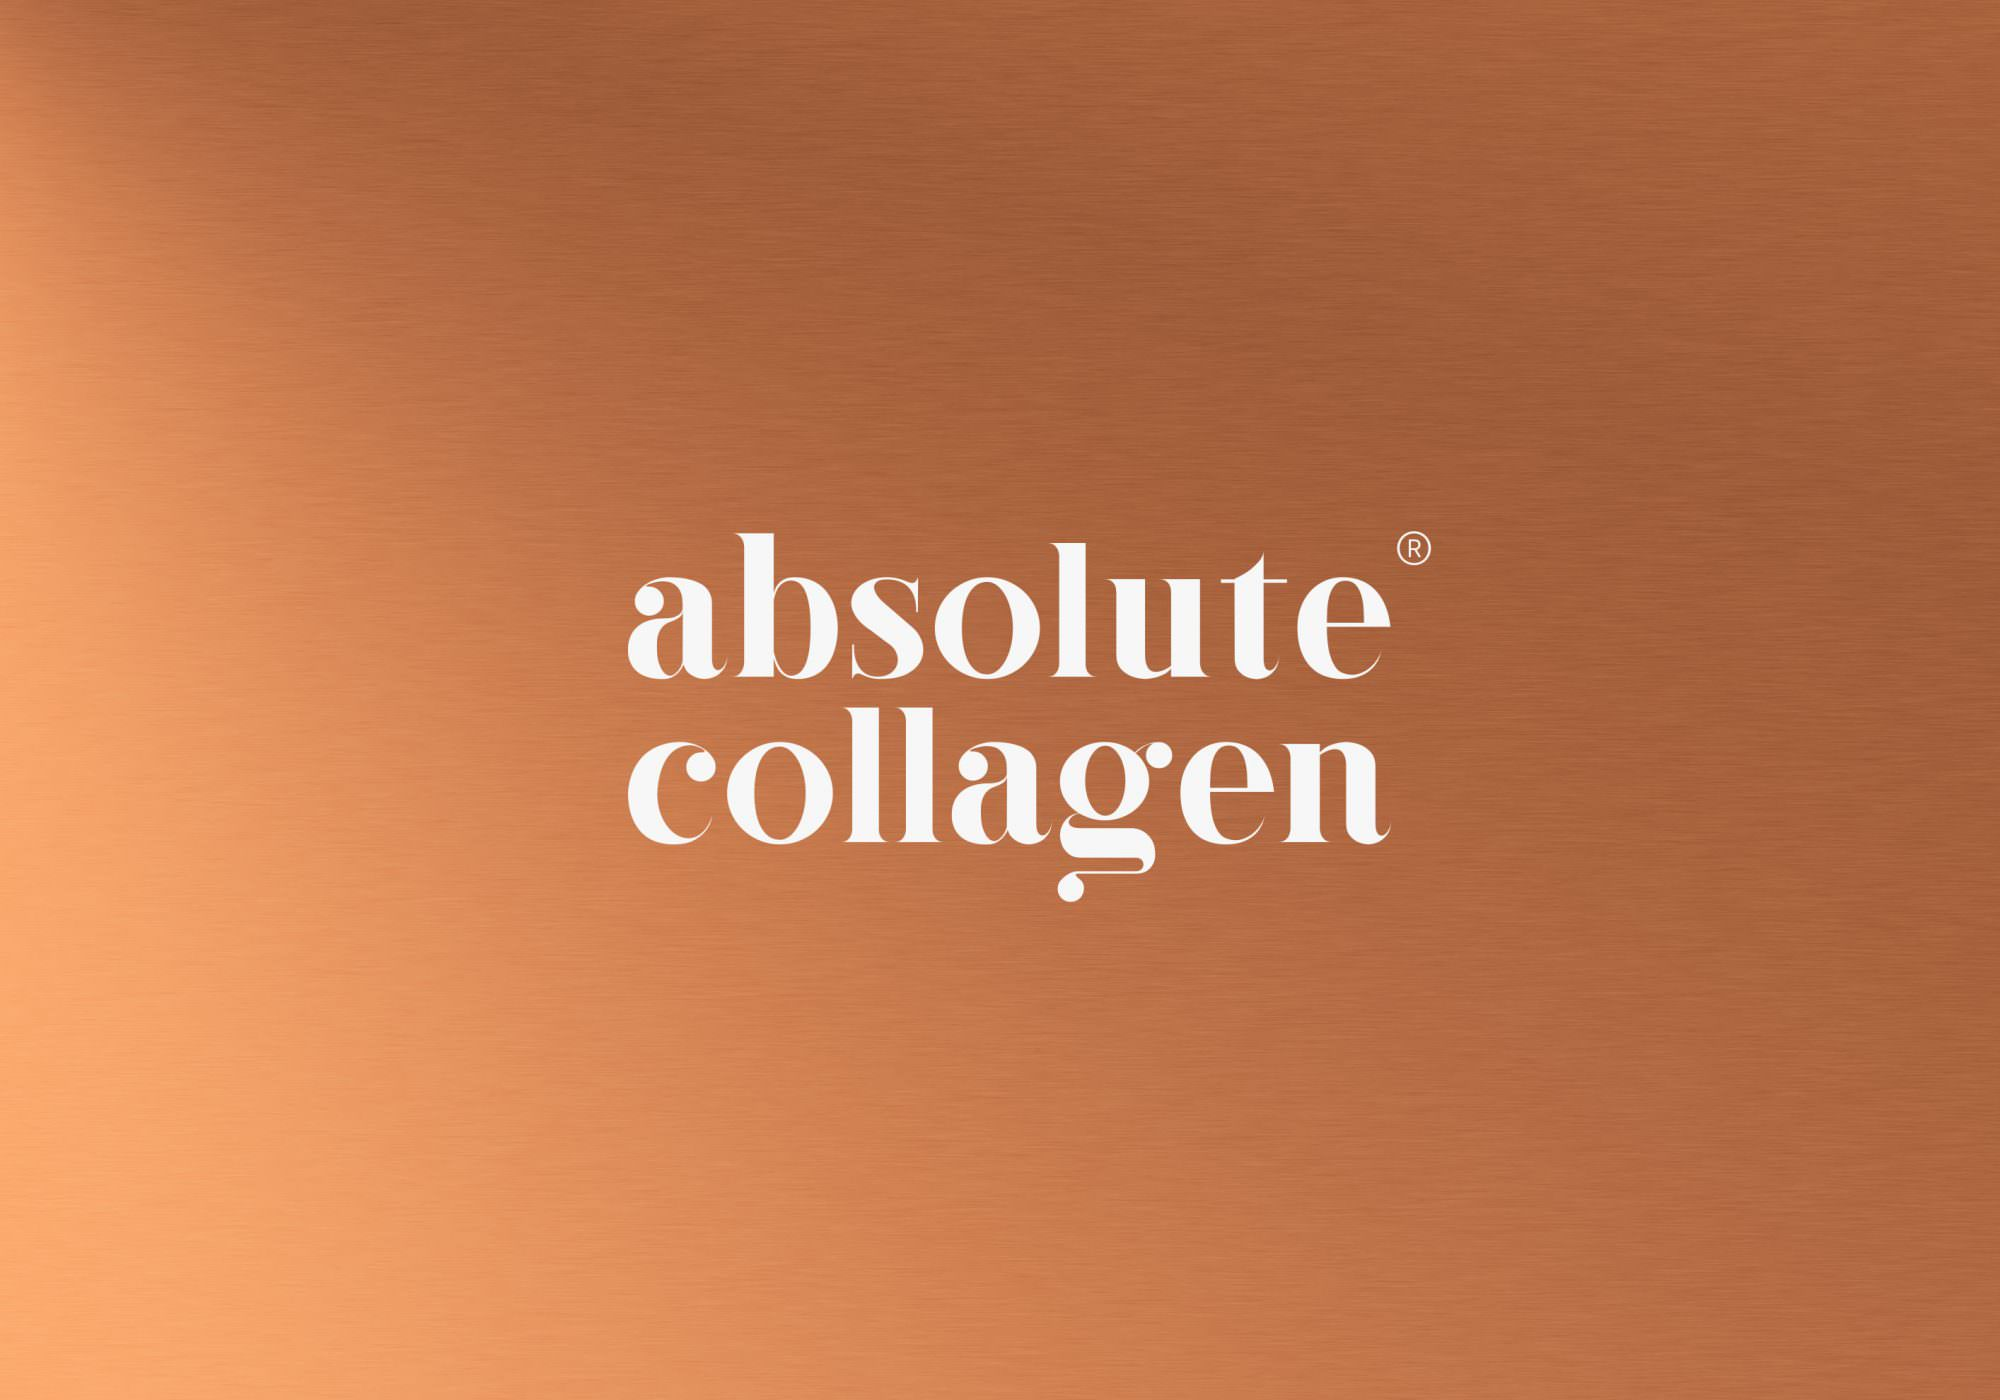 Absolute Collagen - Brand Identity & Packaging Design In Shropshire